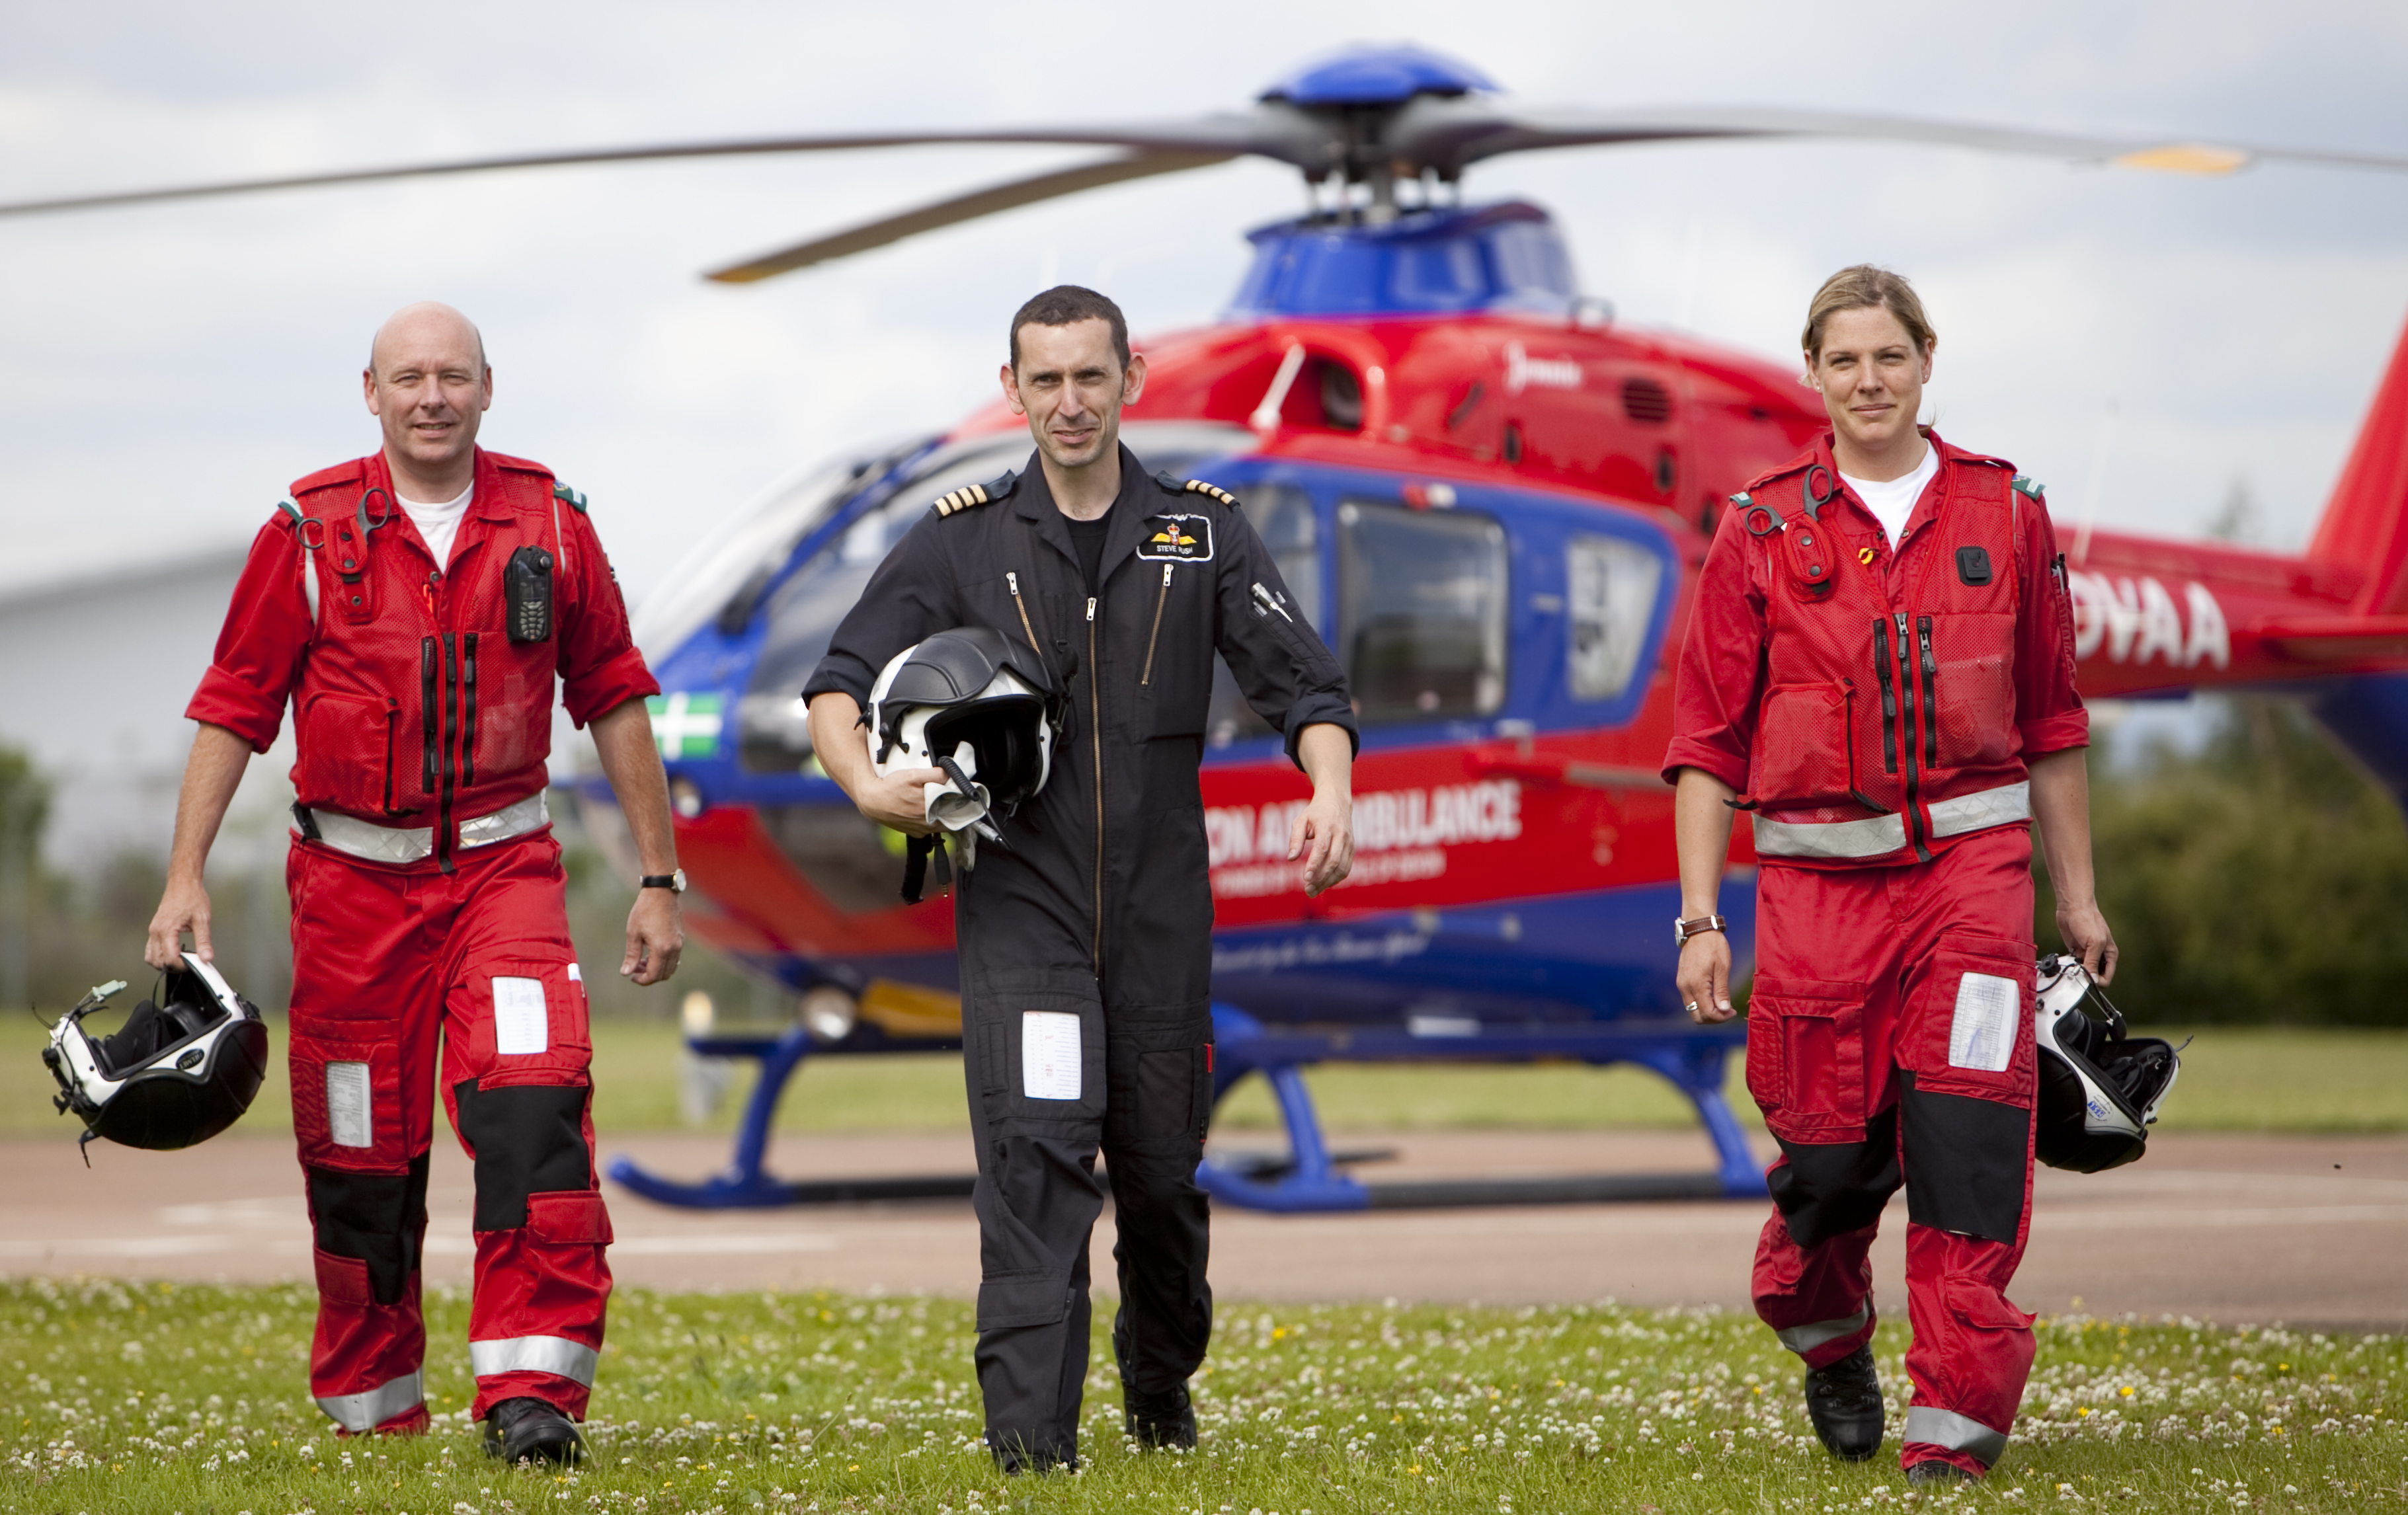 Three members of the Devon Air Ambulance air crew out in the field